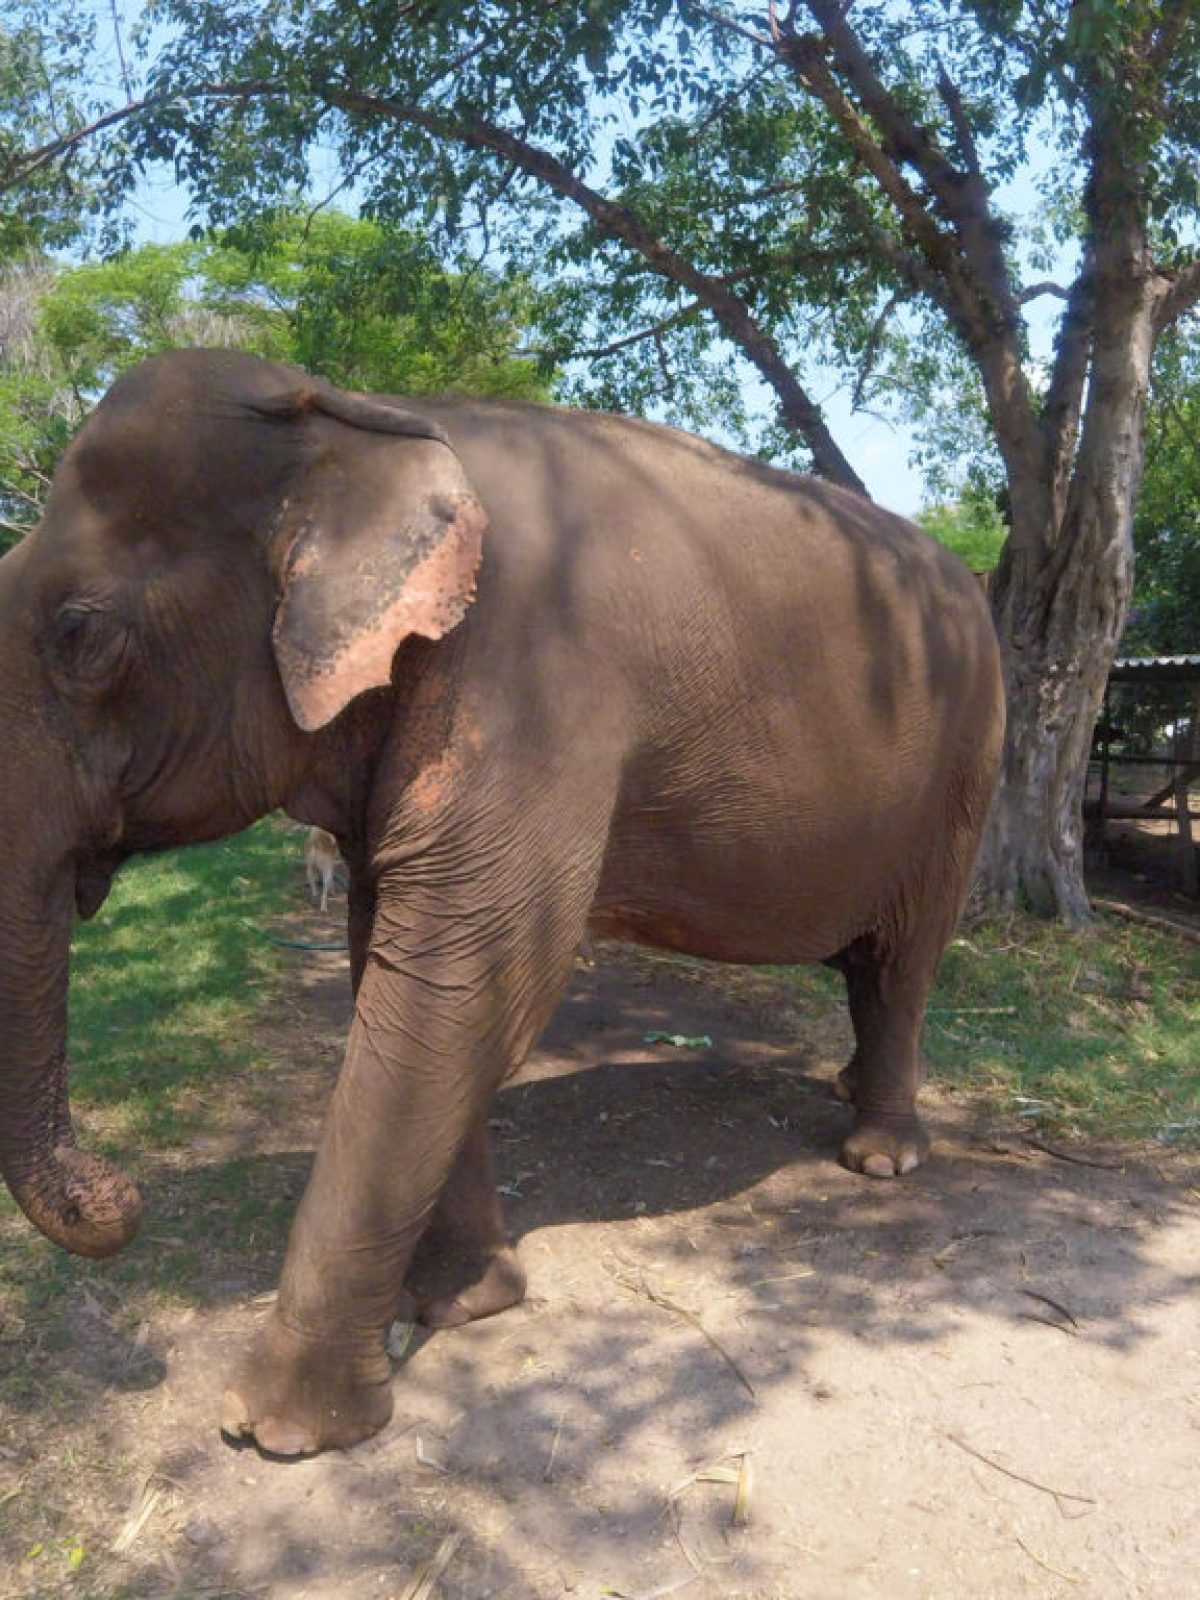 enp, elephant nature park chiang mai, playing with elephants in thailand, elephant abuse in thailand, animal abuse in thailand, riding elephants in thailand, petting tigers in thailand, animal treatment in Thailand